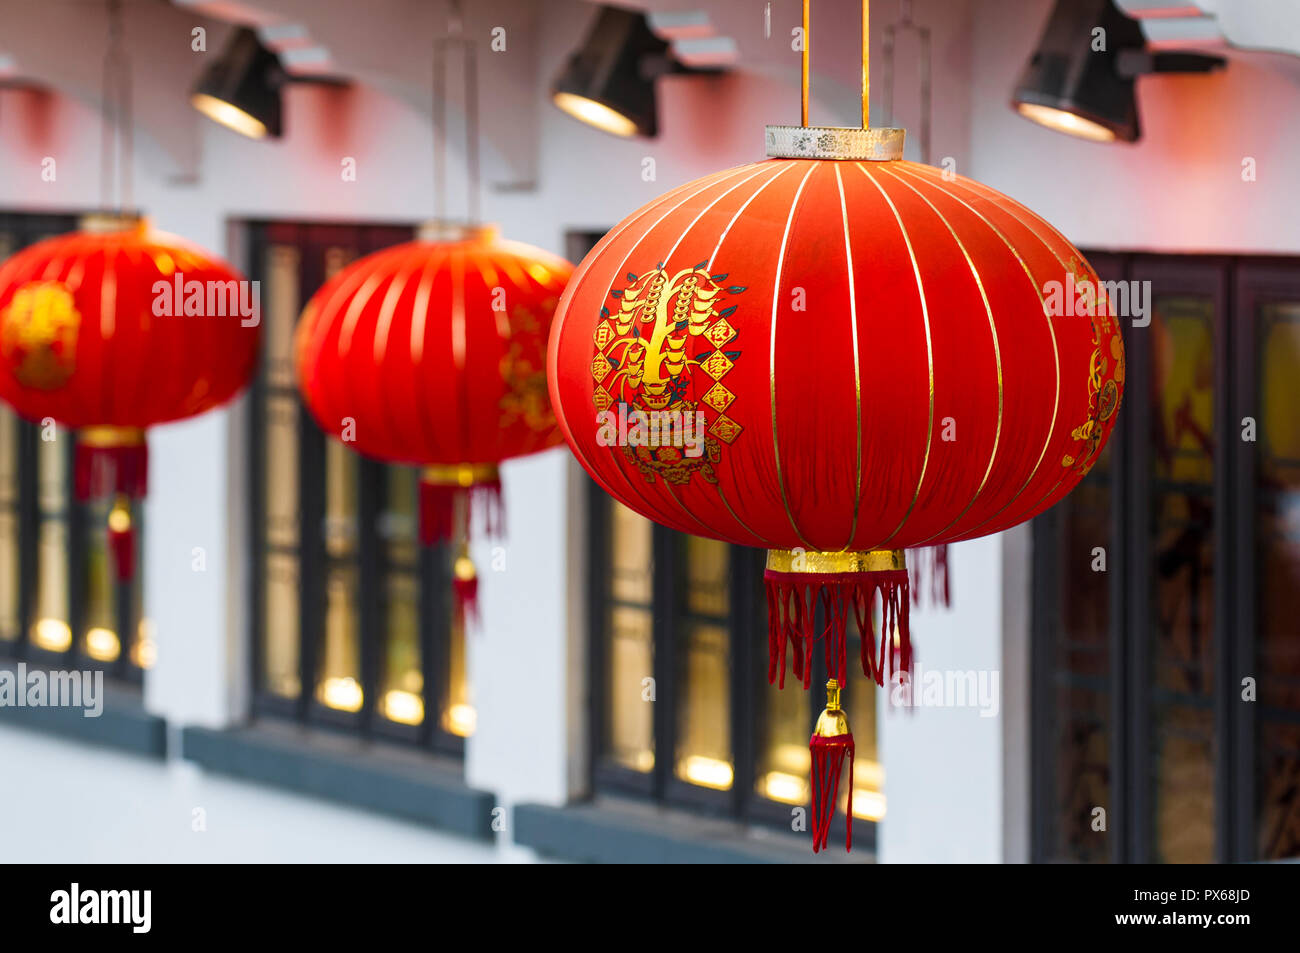 Chinese lanterns at the The Big Buddha and Po Lin Monastery, Lantau Island, Hong Kong, China. - Stock Image